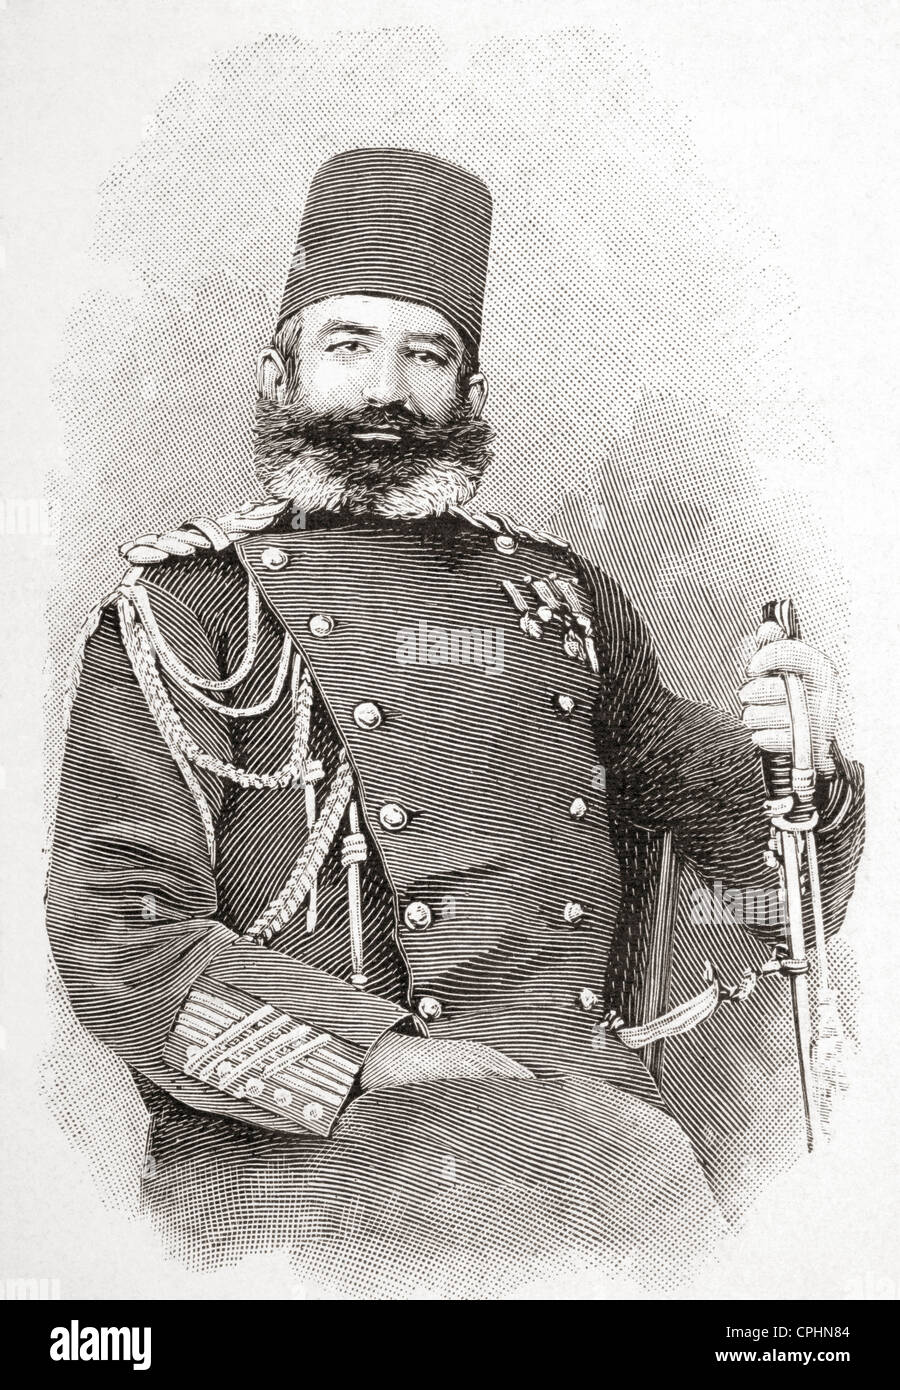 Edhem Pasha, 1851-1909. Ottoman commander during the Greco-Turkish war of 1897. From L'Illustration published - Stock Image